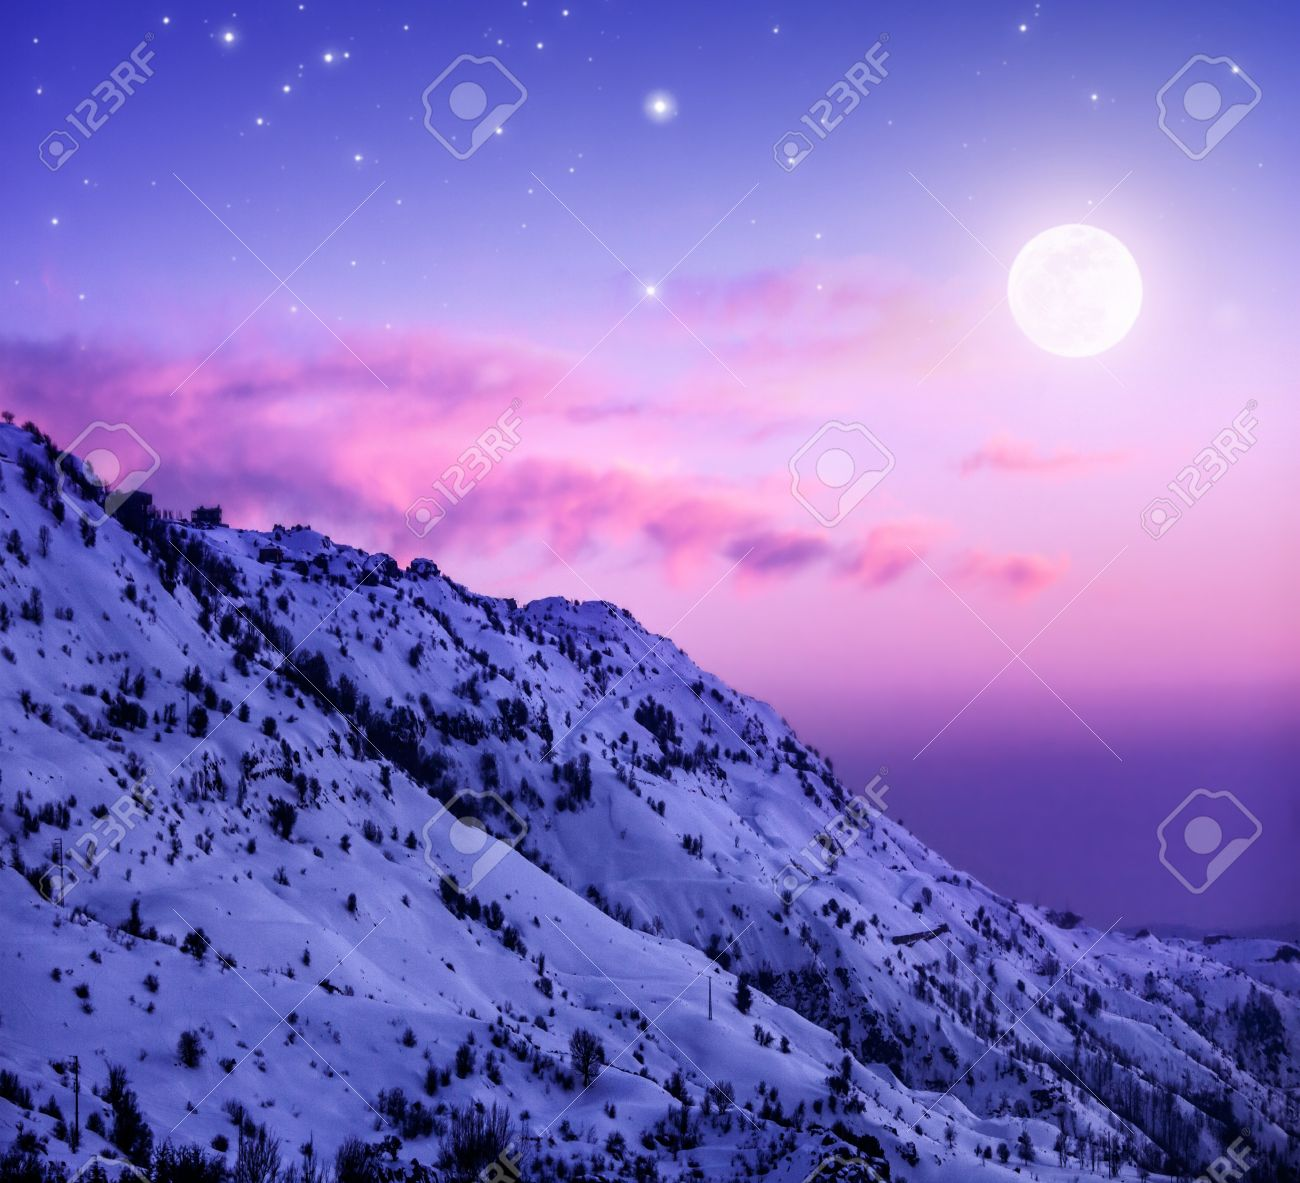 Photo Of Beautiful Snowy Mountains On Purple Sunset Background Faraya Mountain In Lebanon Covered With